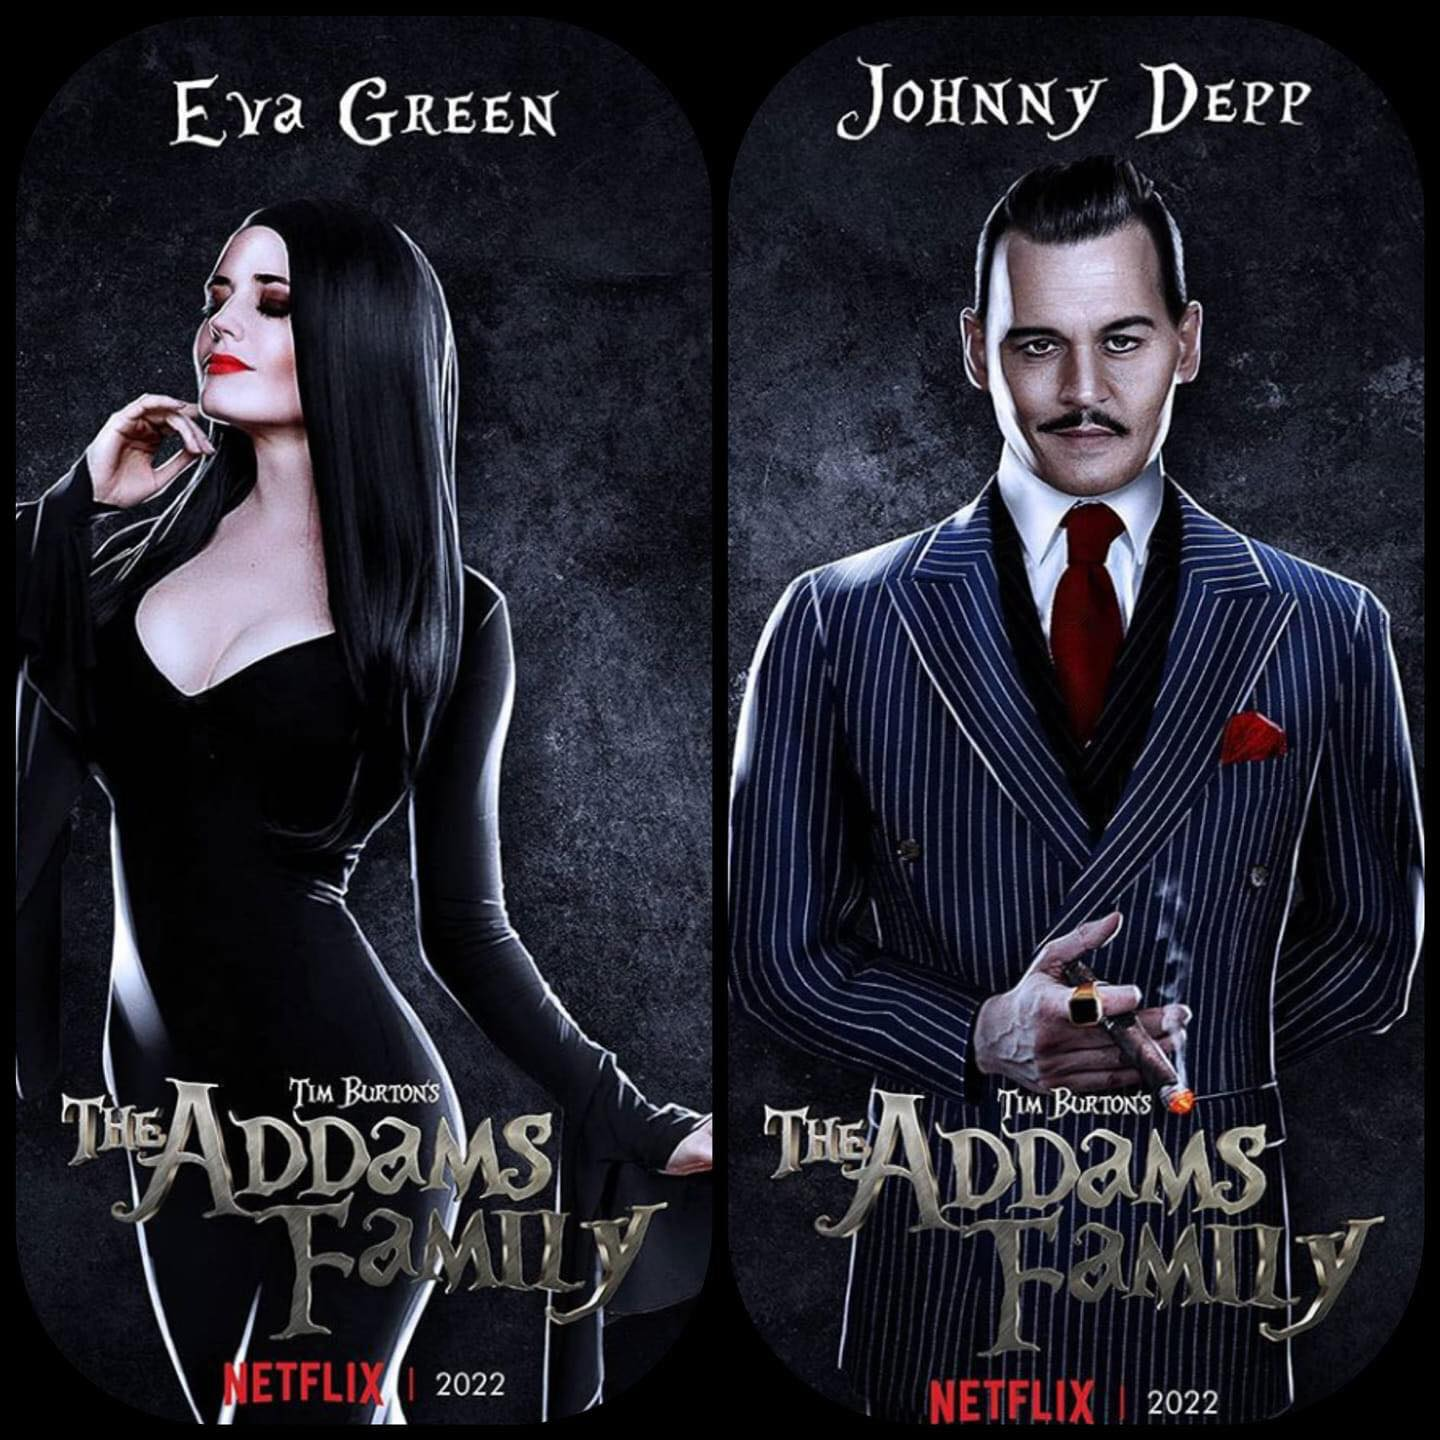 Tim Burton Really Wants Johnny Depp to Play Gomez Addams in New The Addams Family Netflix Series